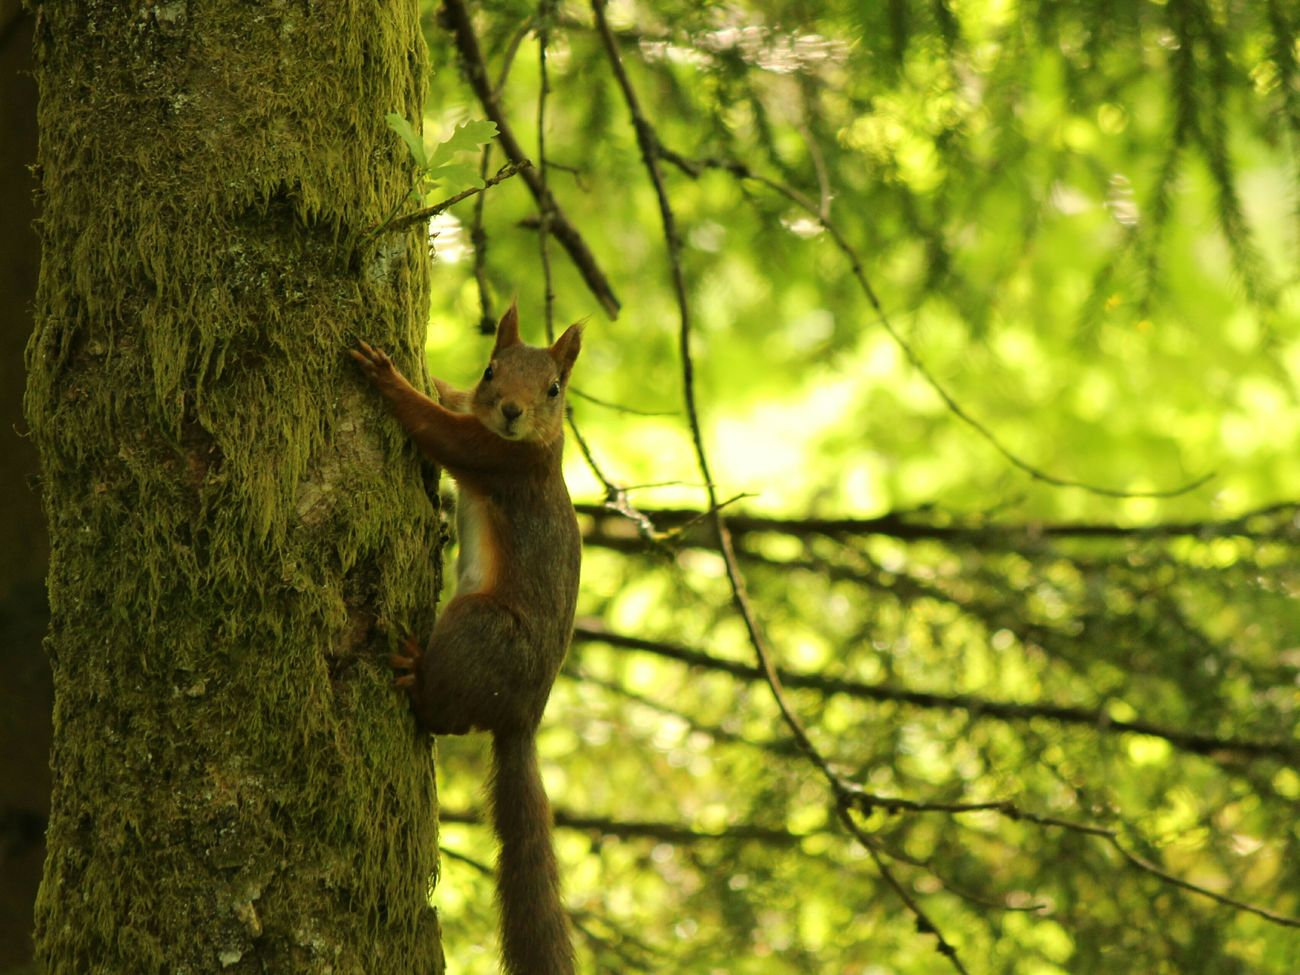 Animals In The Wild One Animal Animal Themes No People Green Color Nature Tree Animal Wildlife Outdoors Low Angle View Branch Day Close-up Mammal Squirrel Forest Moss Sweden ❤️